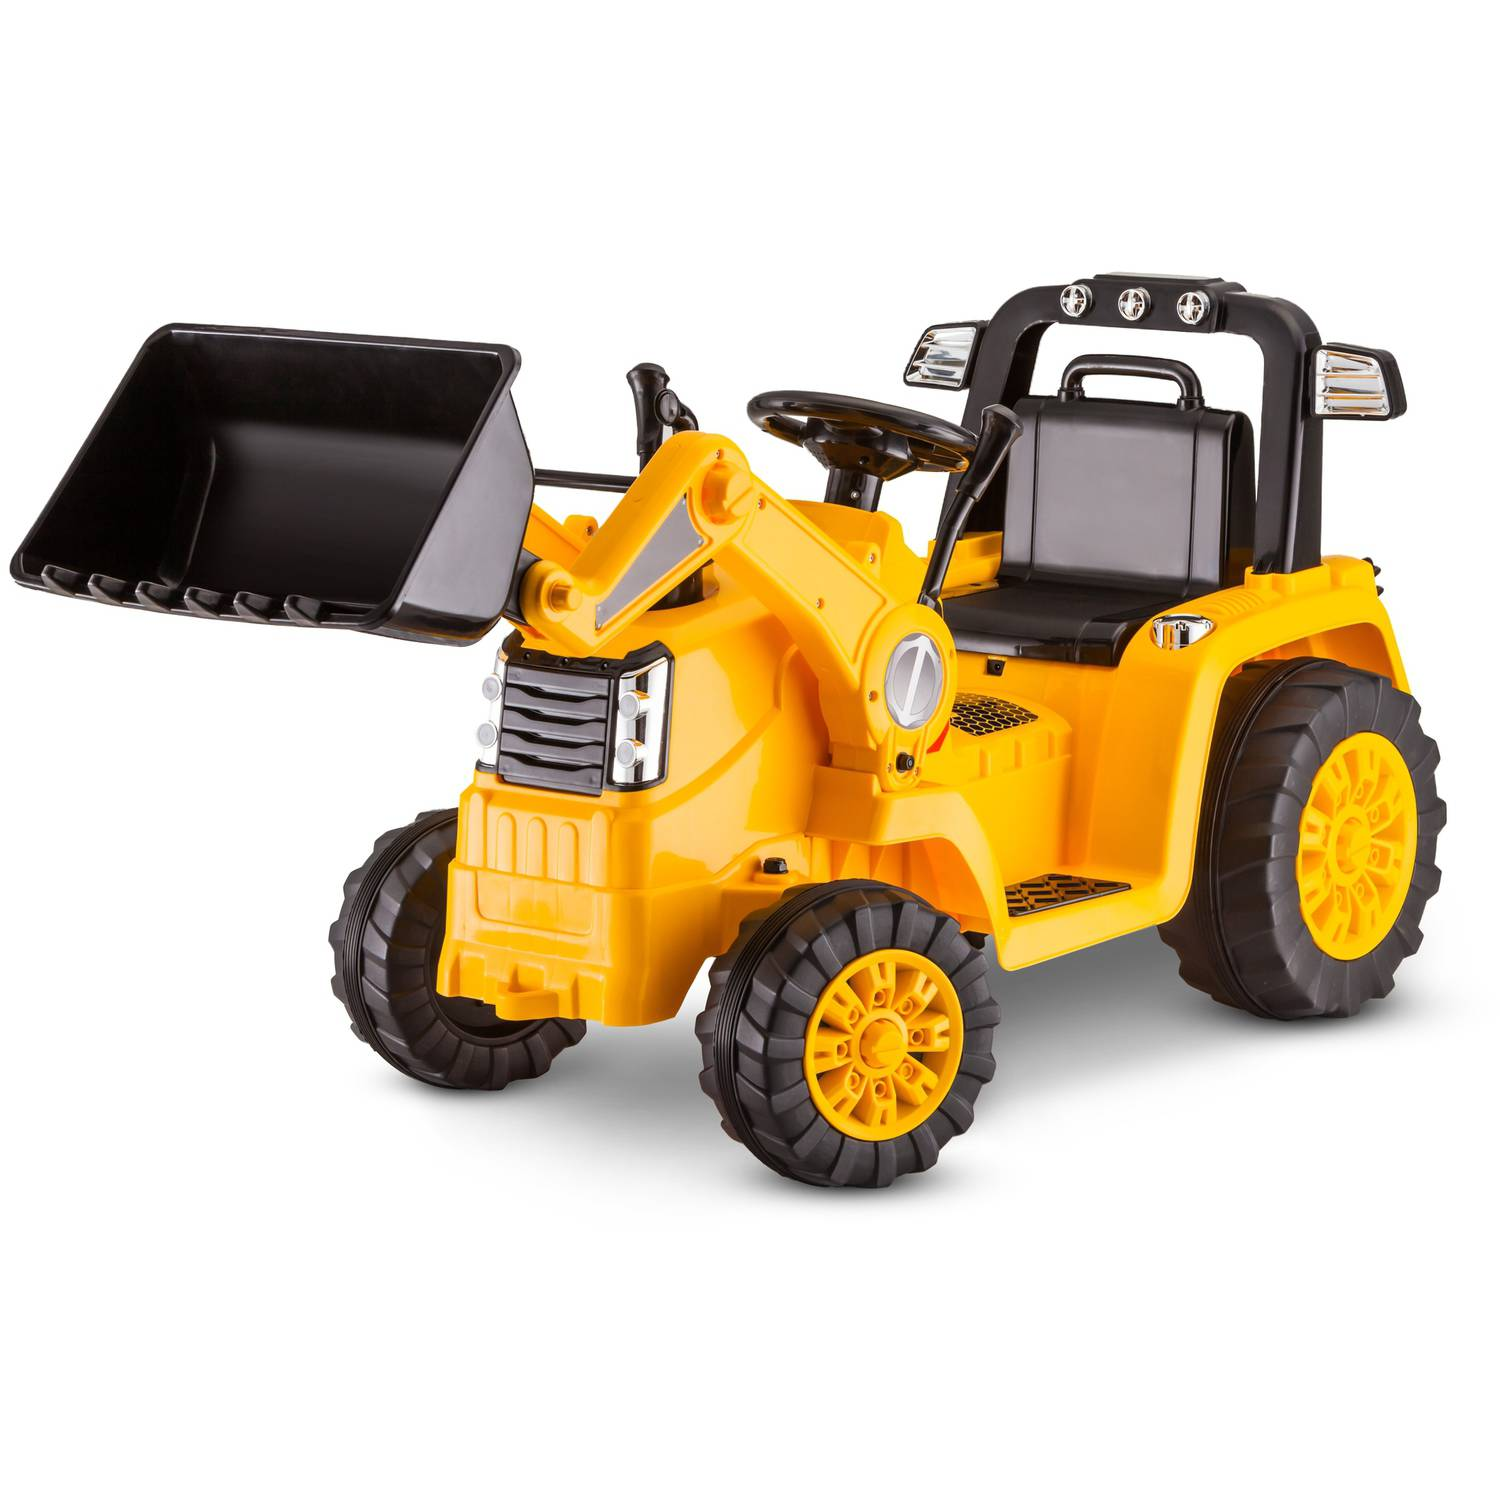 hight resolution of kid trax 6v caterpillar tractor battery powered ride on yellow walmart com